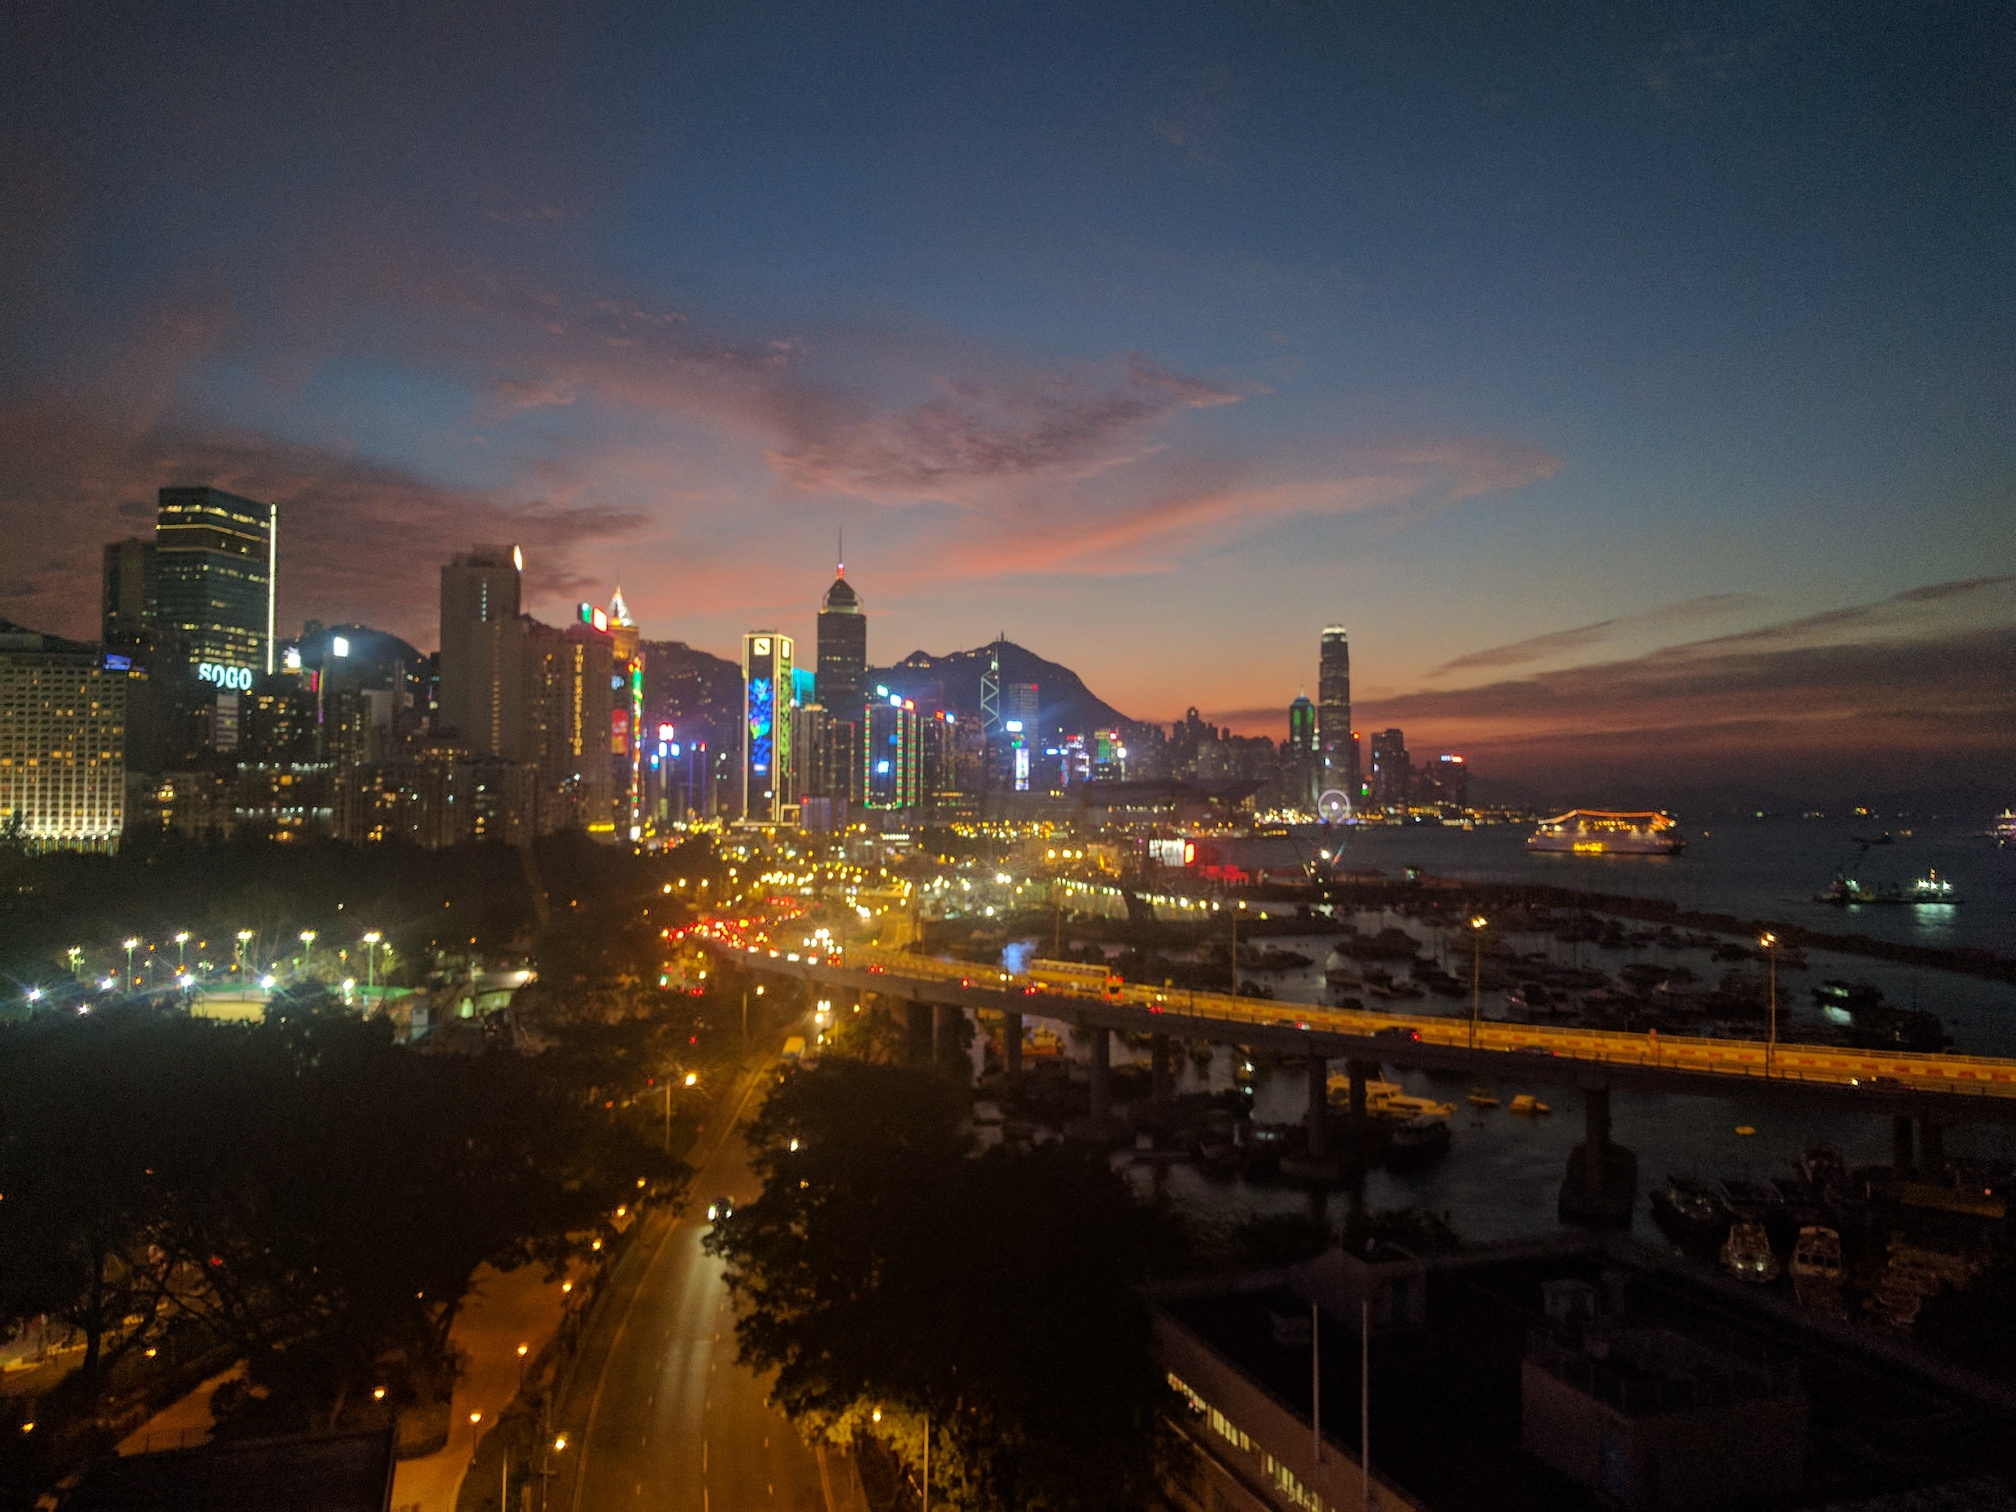 And as the sun fades the LEDs rise creating a beautiful Lightrise over Hong Kong Harbour